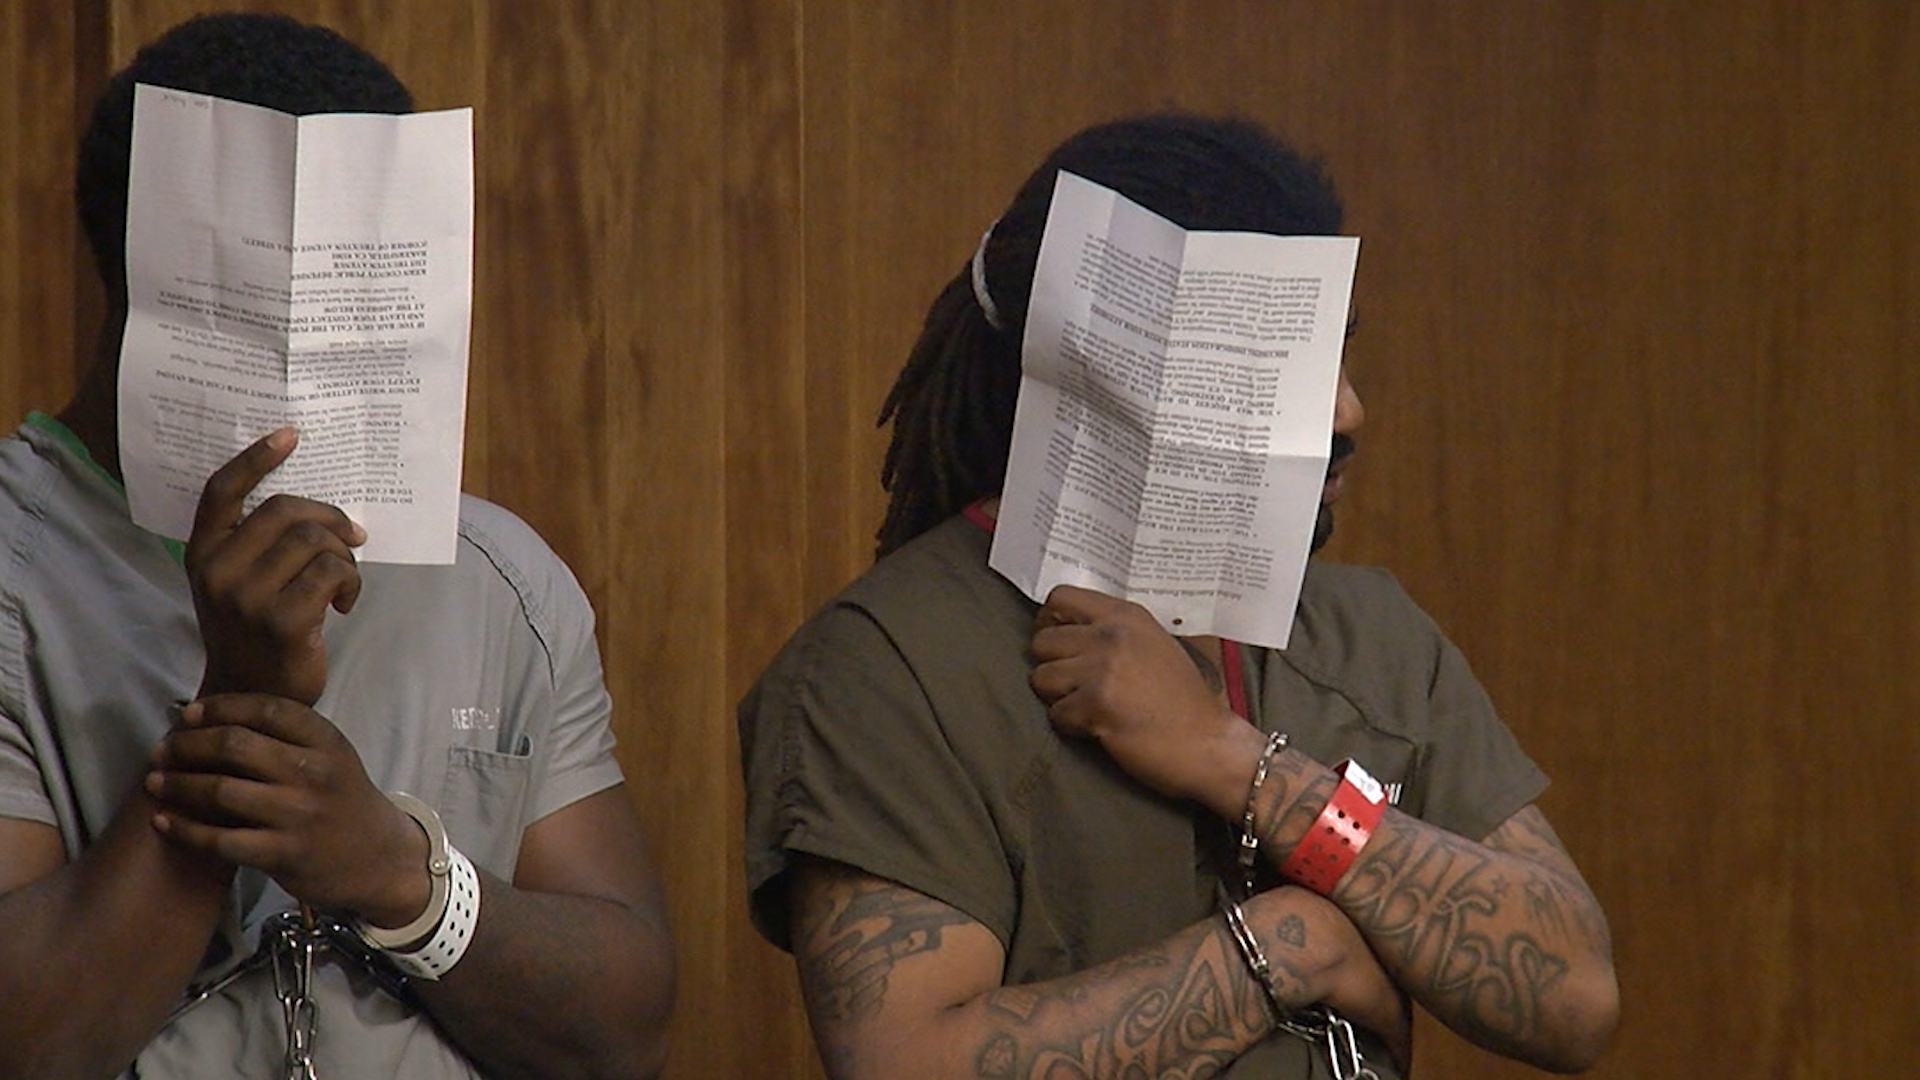 BREAKING: New warrants identify suspects in 5-year-old's murder